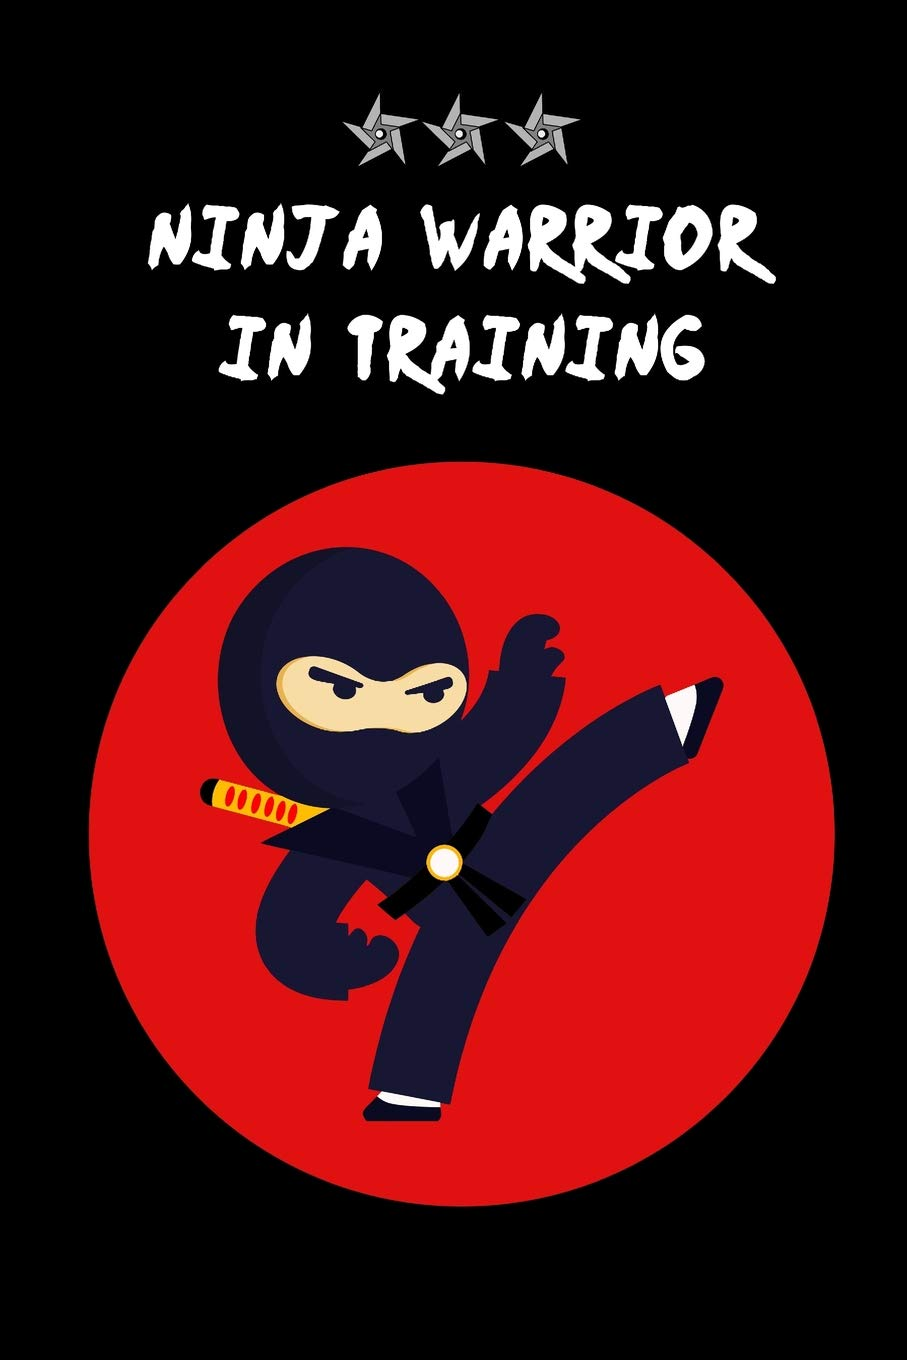 NINJA Warrior in Training: Funny Hilarious Novelty Gift for ...